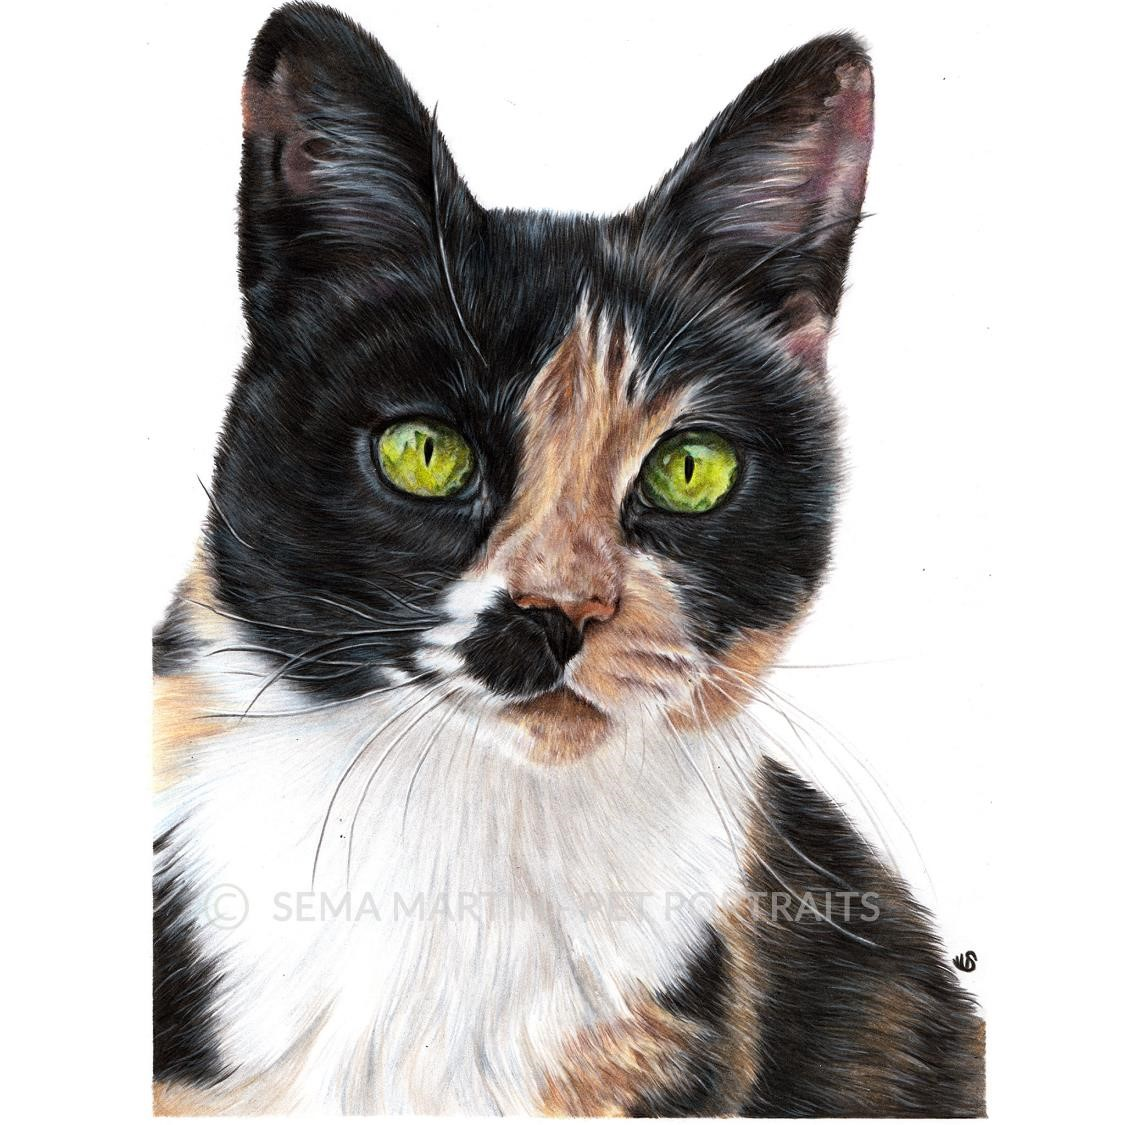 'Perkins' - USA, 8.3 x 11.7 inches, 2019, Color Pencil Portrait of a Tortoiseshell Cat